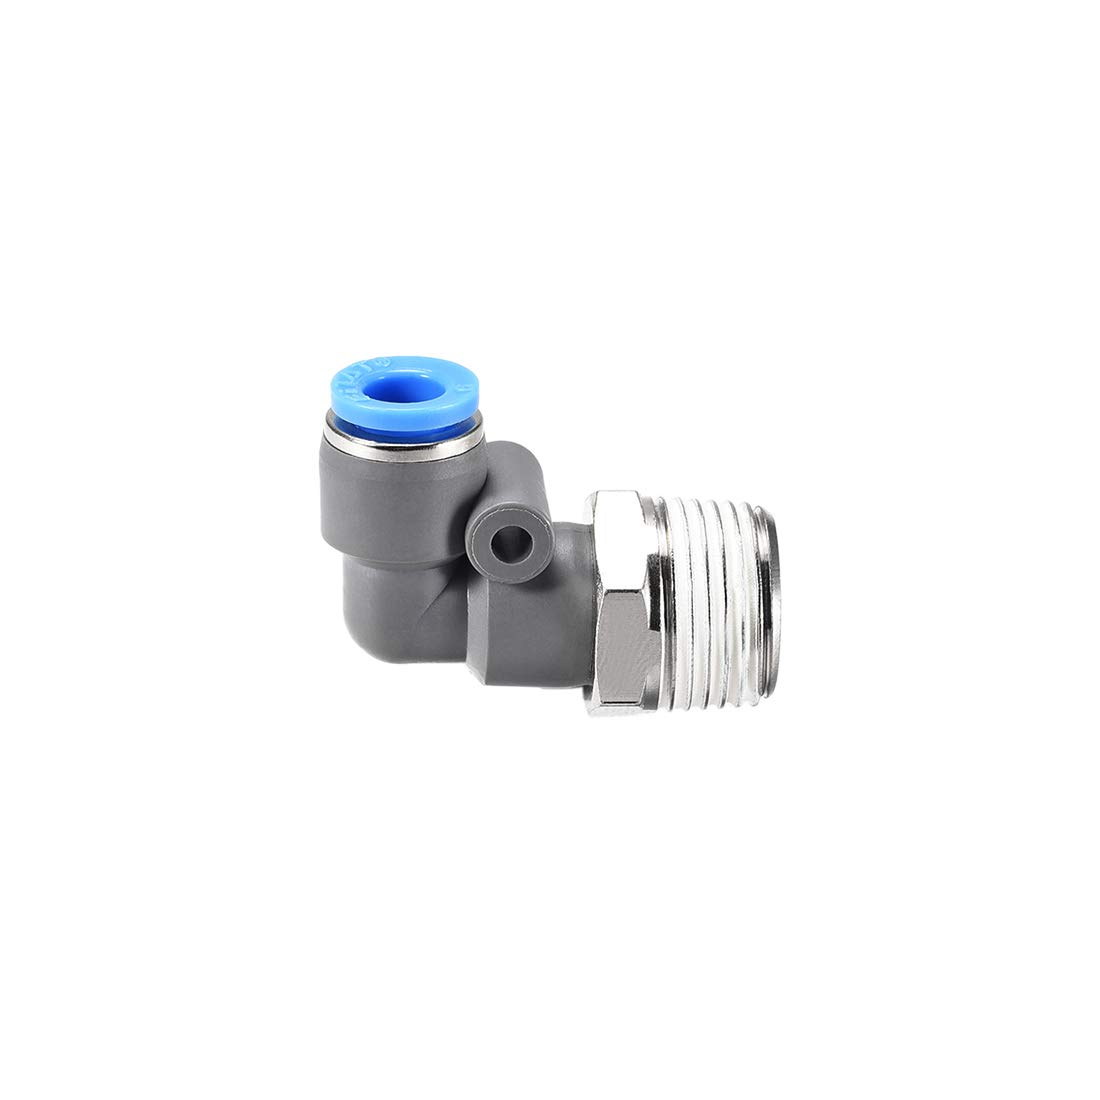 uxcell Elbow Push to Connect Air Fittings 6mm Tube OD X 3//8PT Male Thread Pneumatic Quick Release Connectors Grey